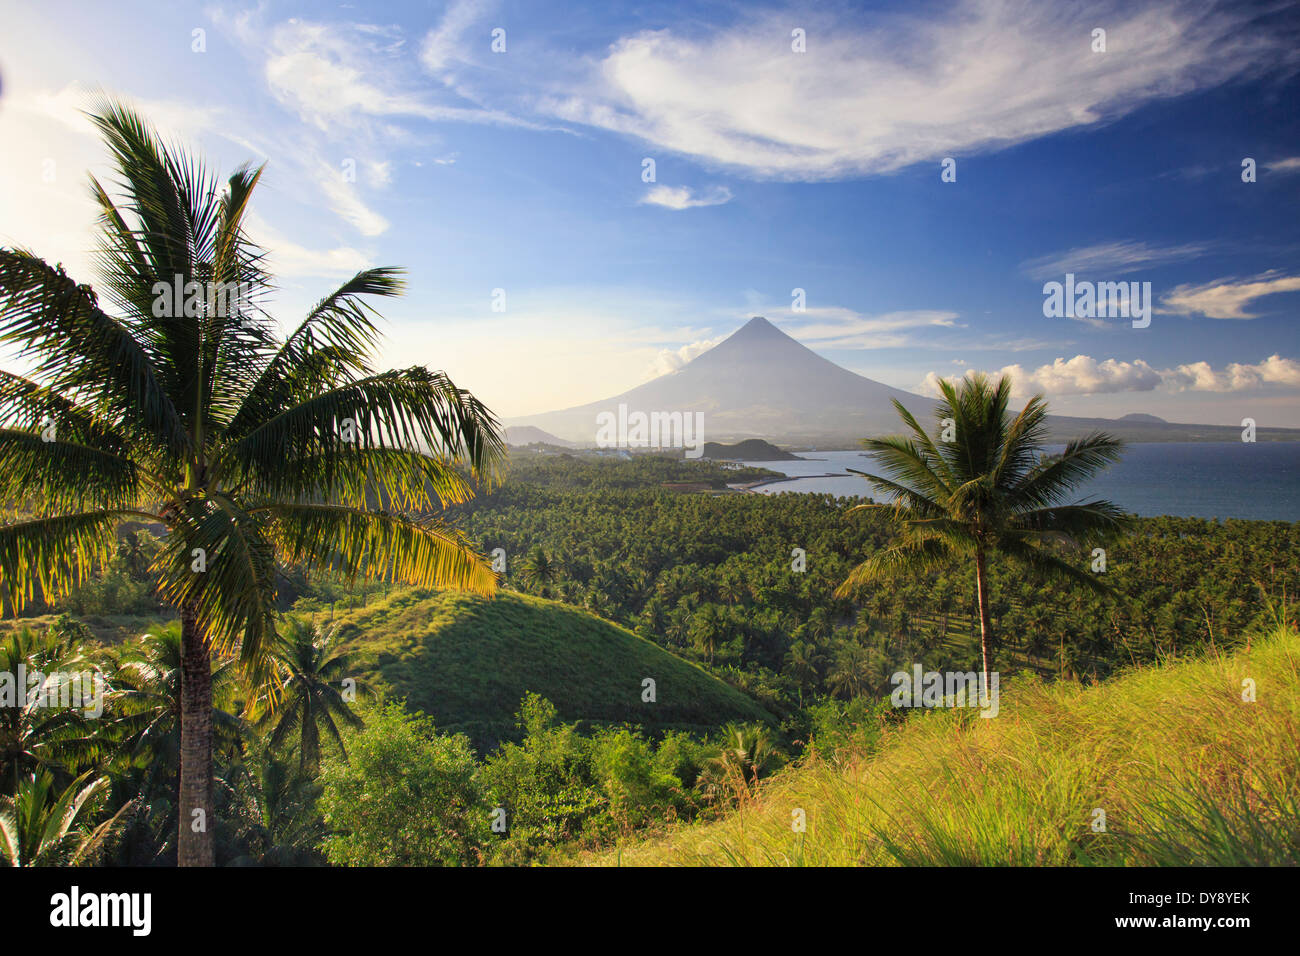 Philippines, Southeastern Luzon, Bicol, Mayon Volcano - Stock Image